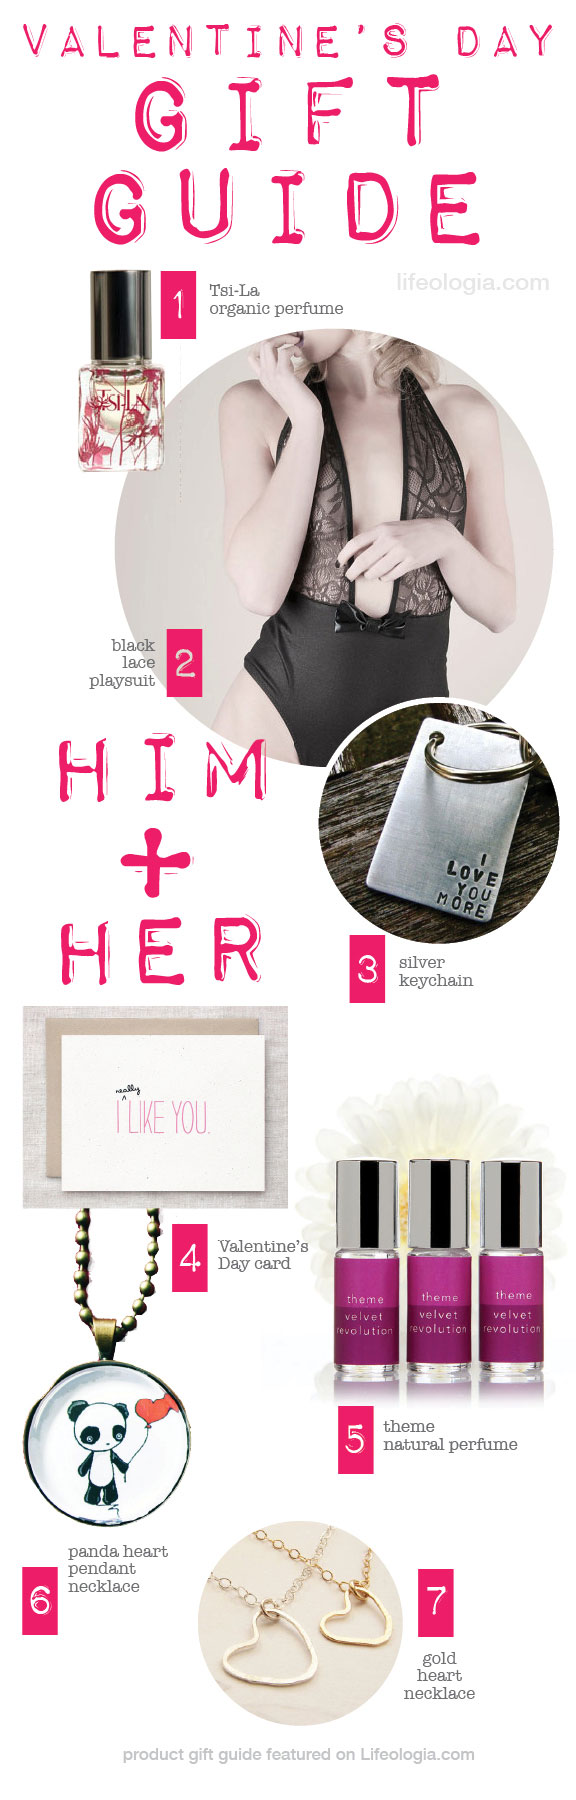 valentines day gift guide him her february 6 2013 by ella i love this valentines day gift guide - Valentines Day Gift Guide